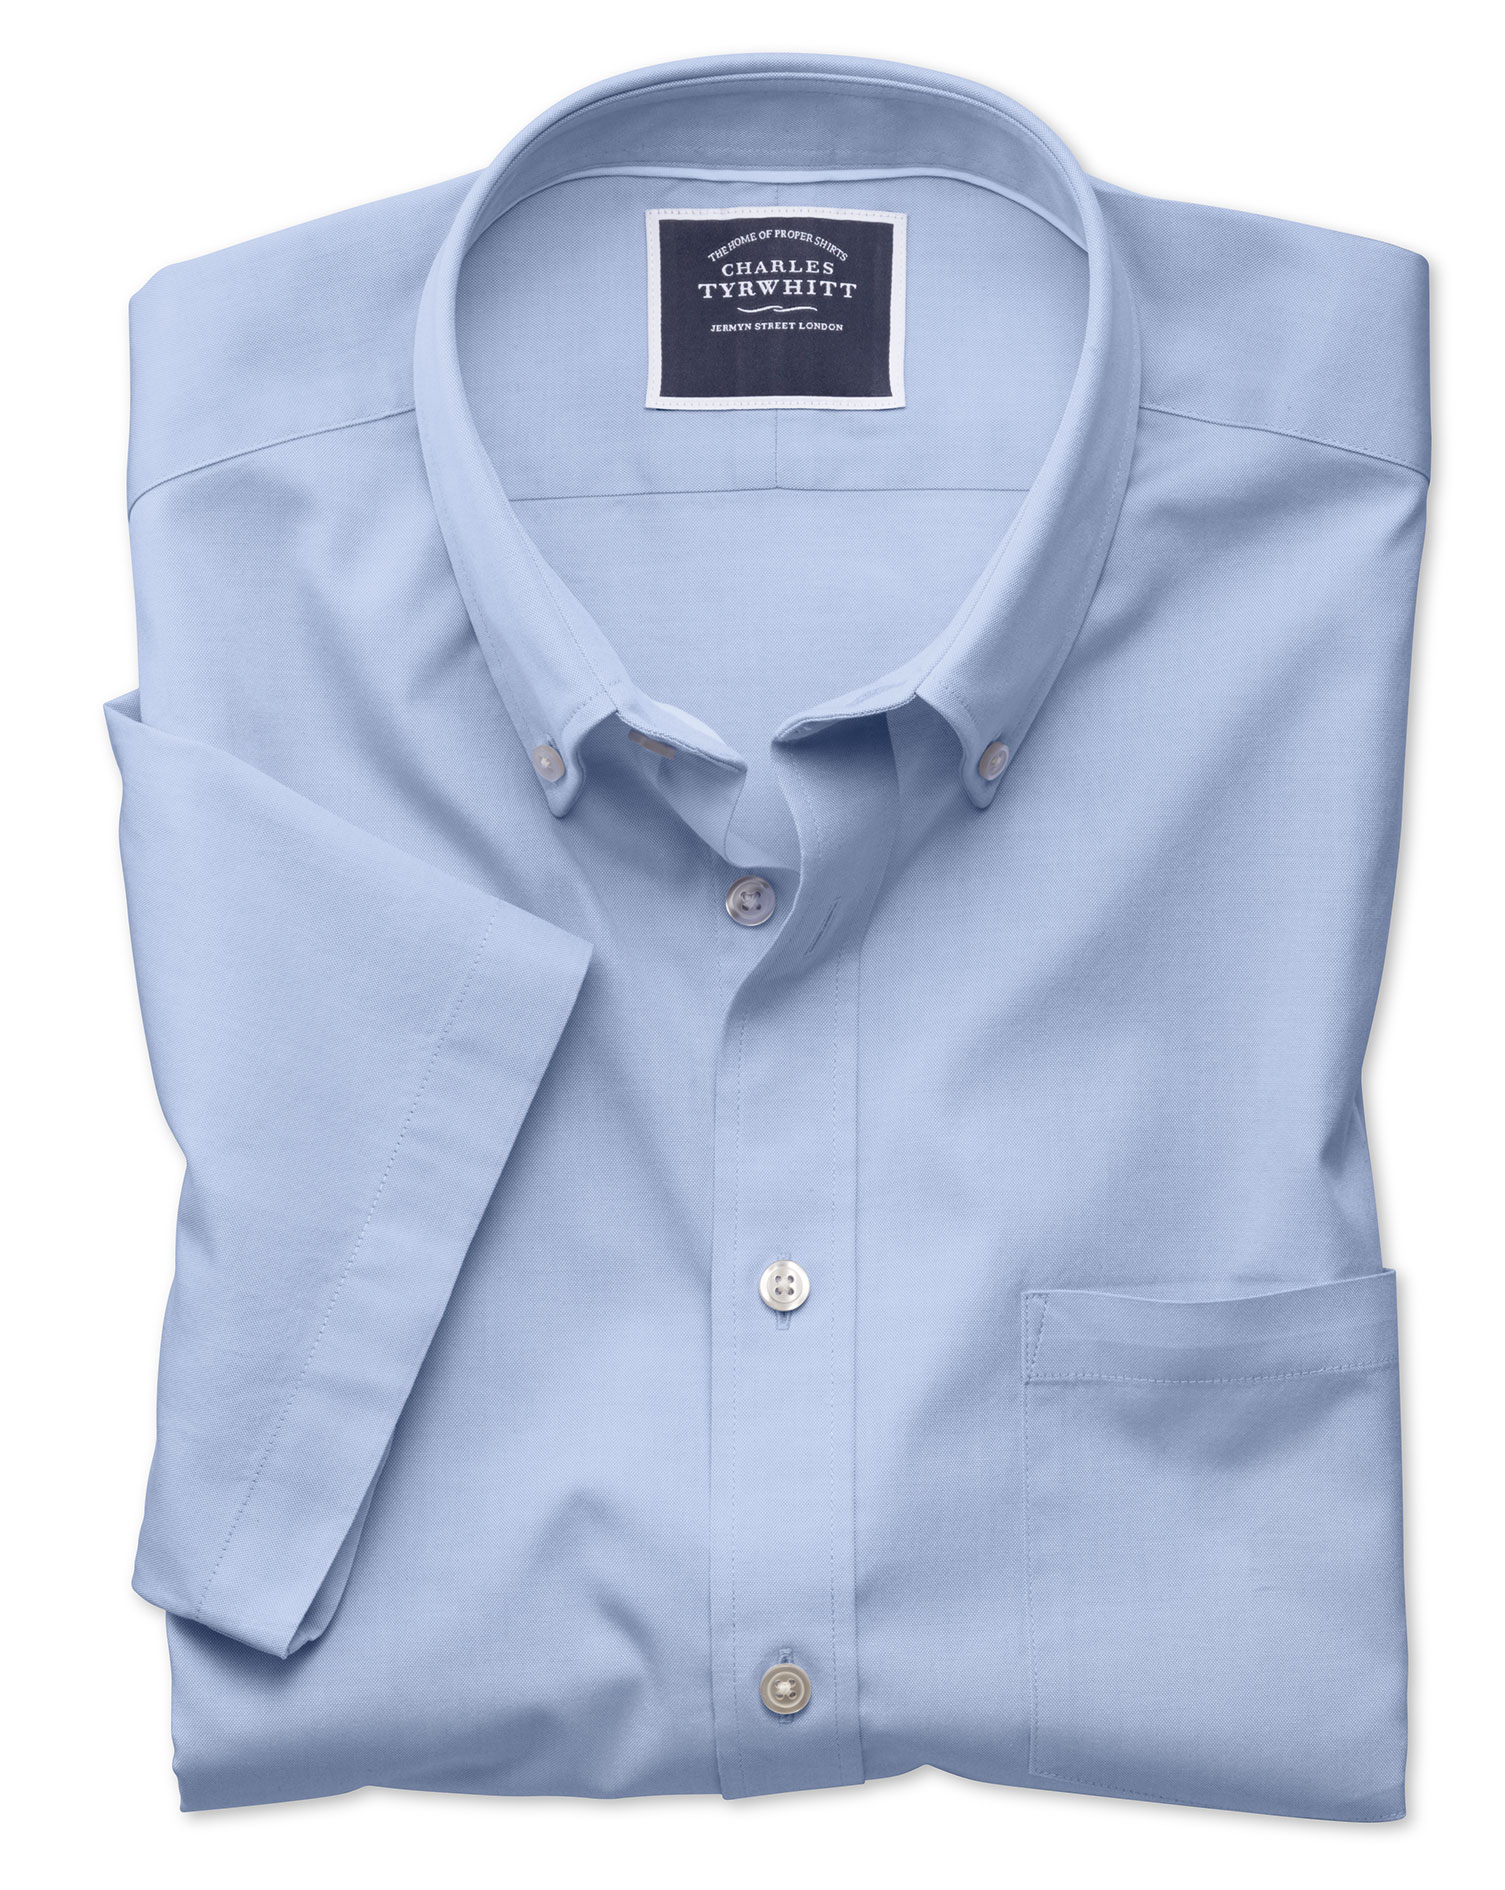 Slim Fit Sky Blue Washed Oxford Short Sleeve Cotton Shirt Single Cuff Size Small by Charles Tyrwhitt